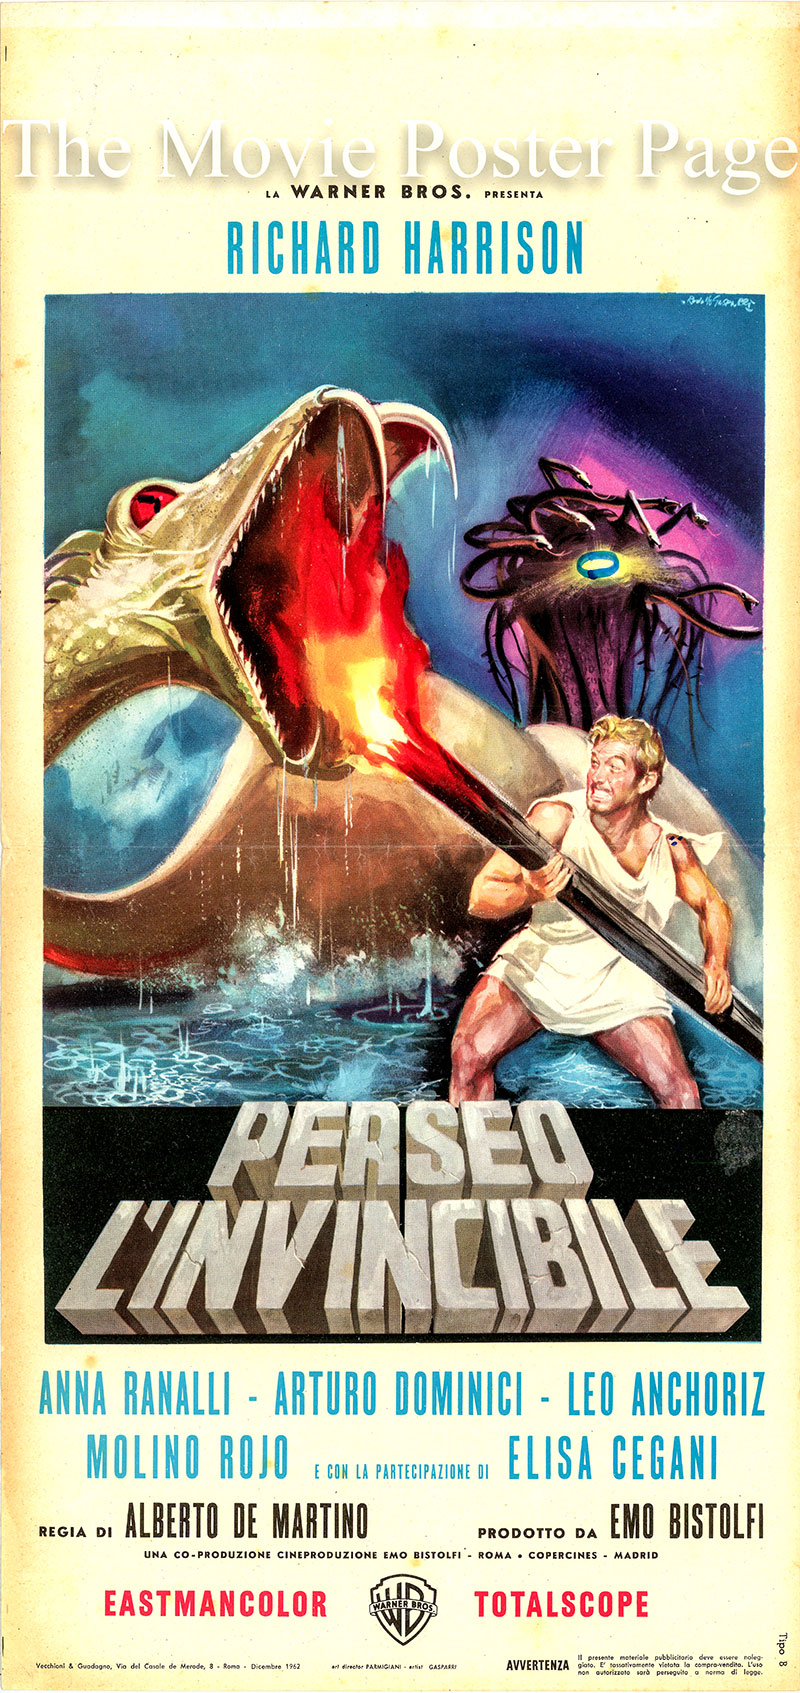 This is an Italian locandina poster for the 1963 Alberto De Martini film Perseus the Invincible starring Richard Harrison as Perseus.